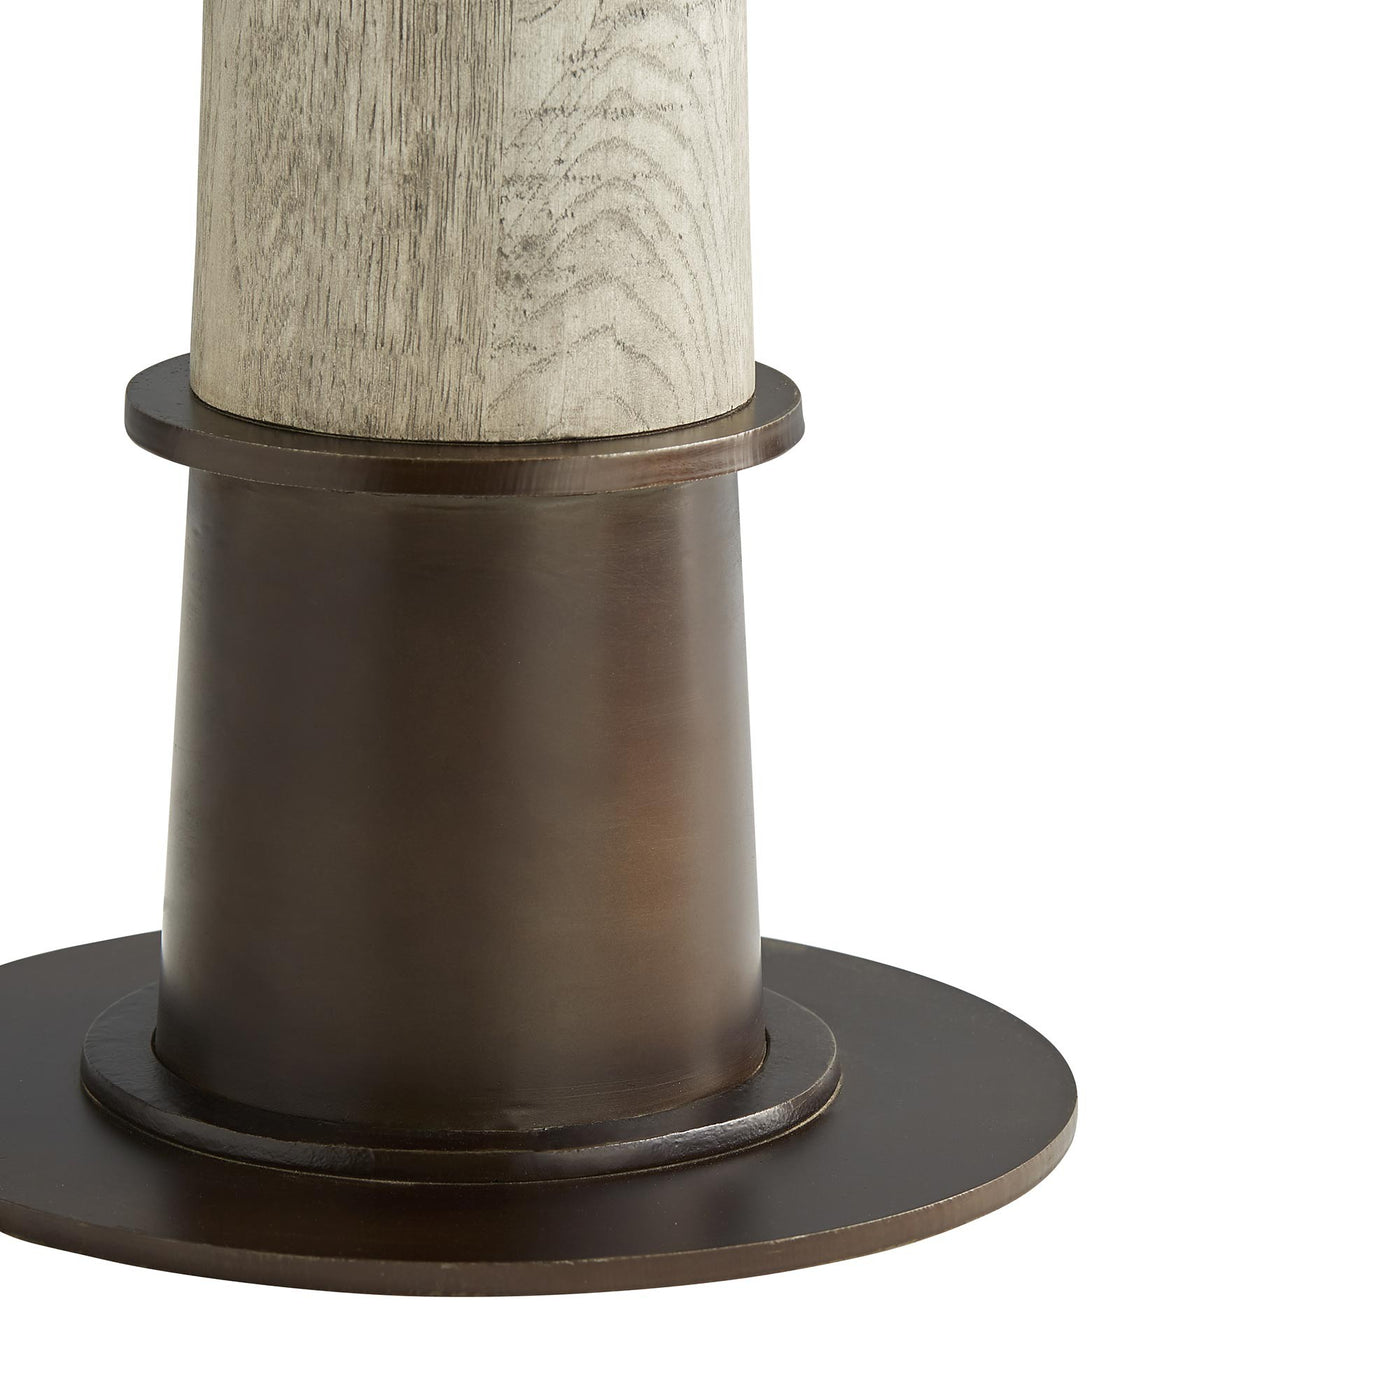 arteriors home kamile side table base detail